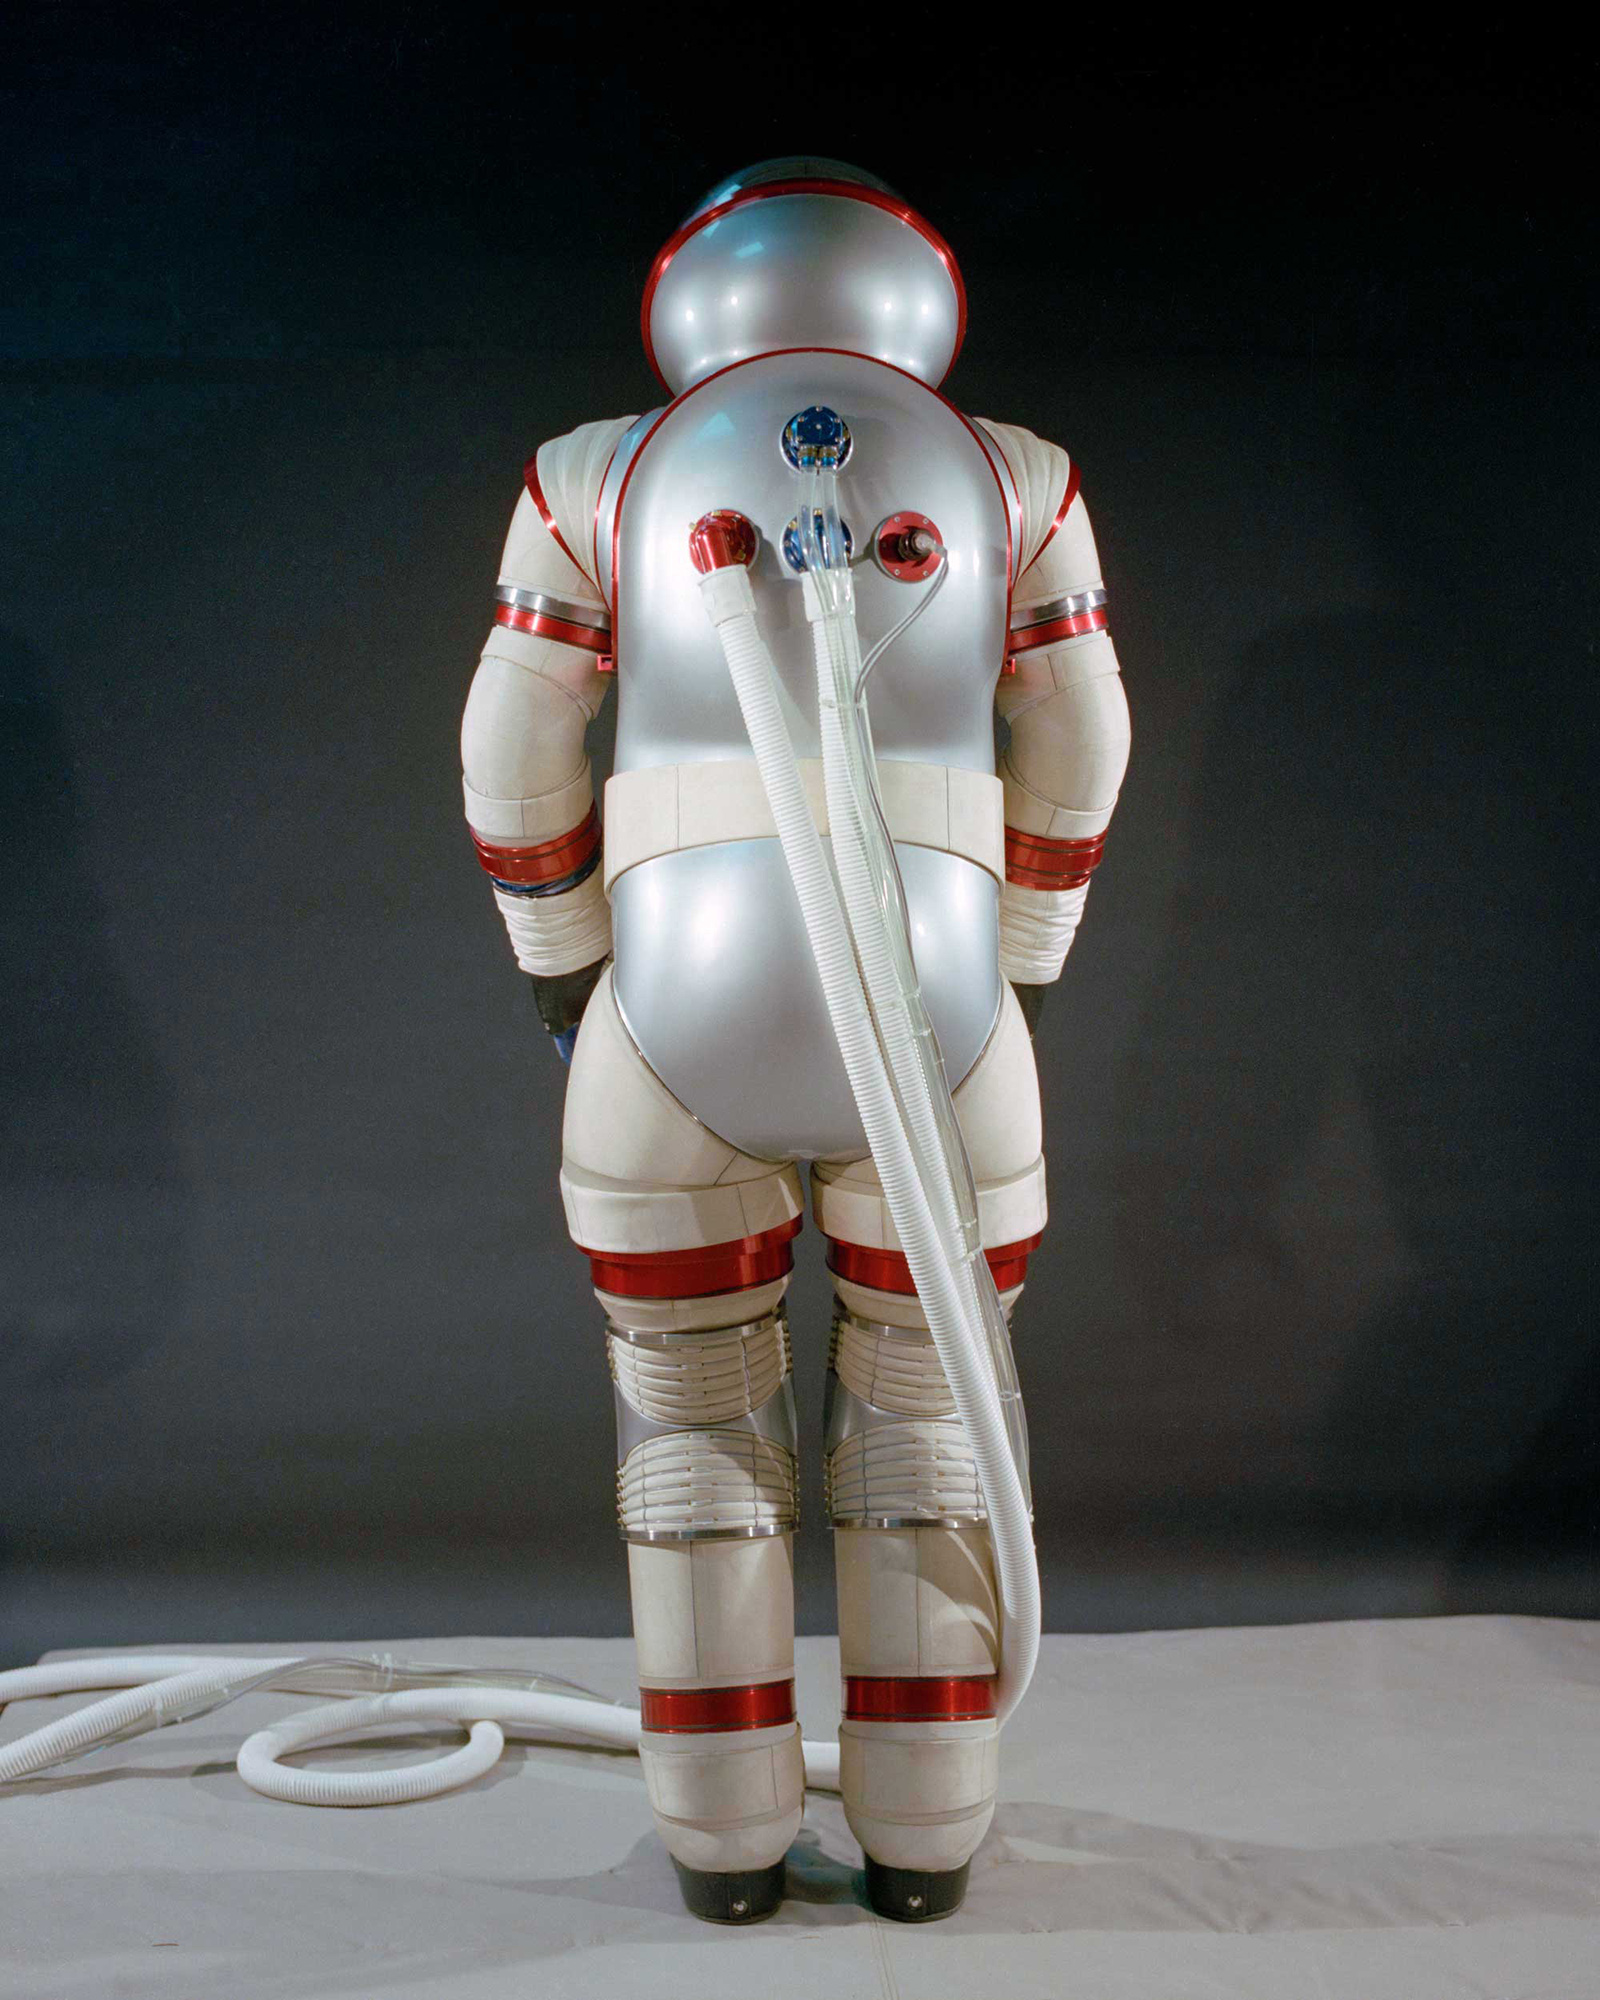 This is the third AX (Ames Experimental) hard suit developed by NASA, following two between 1964 and 1968. California's Ames Research Center (ARC), founded in 1939, is a primary NASA research center. Read more    here   .